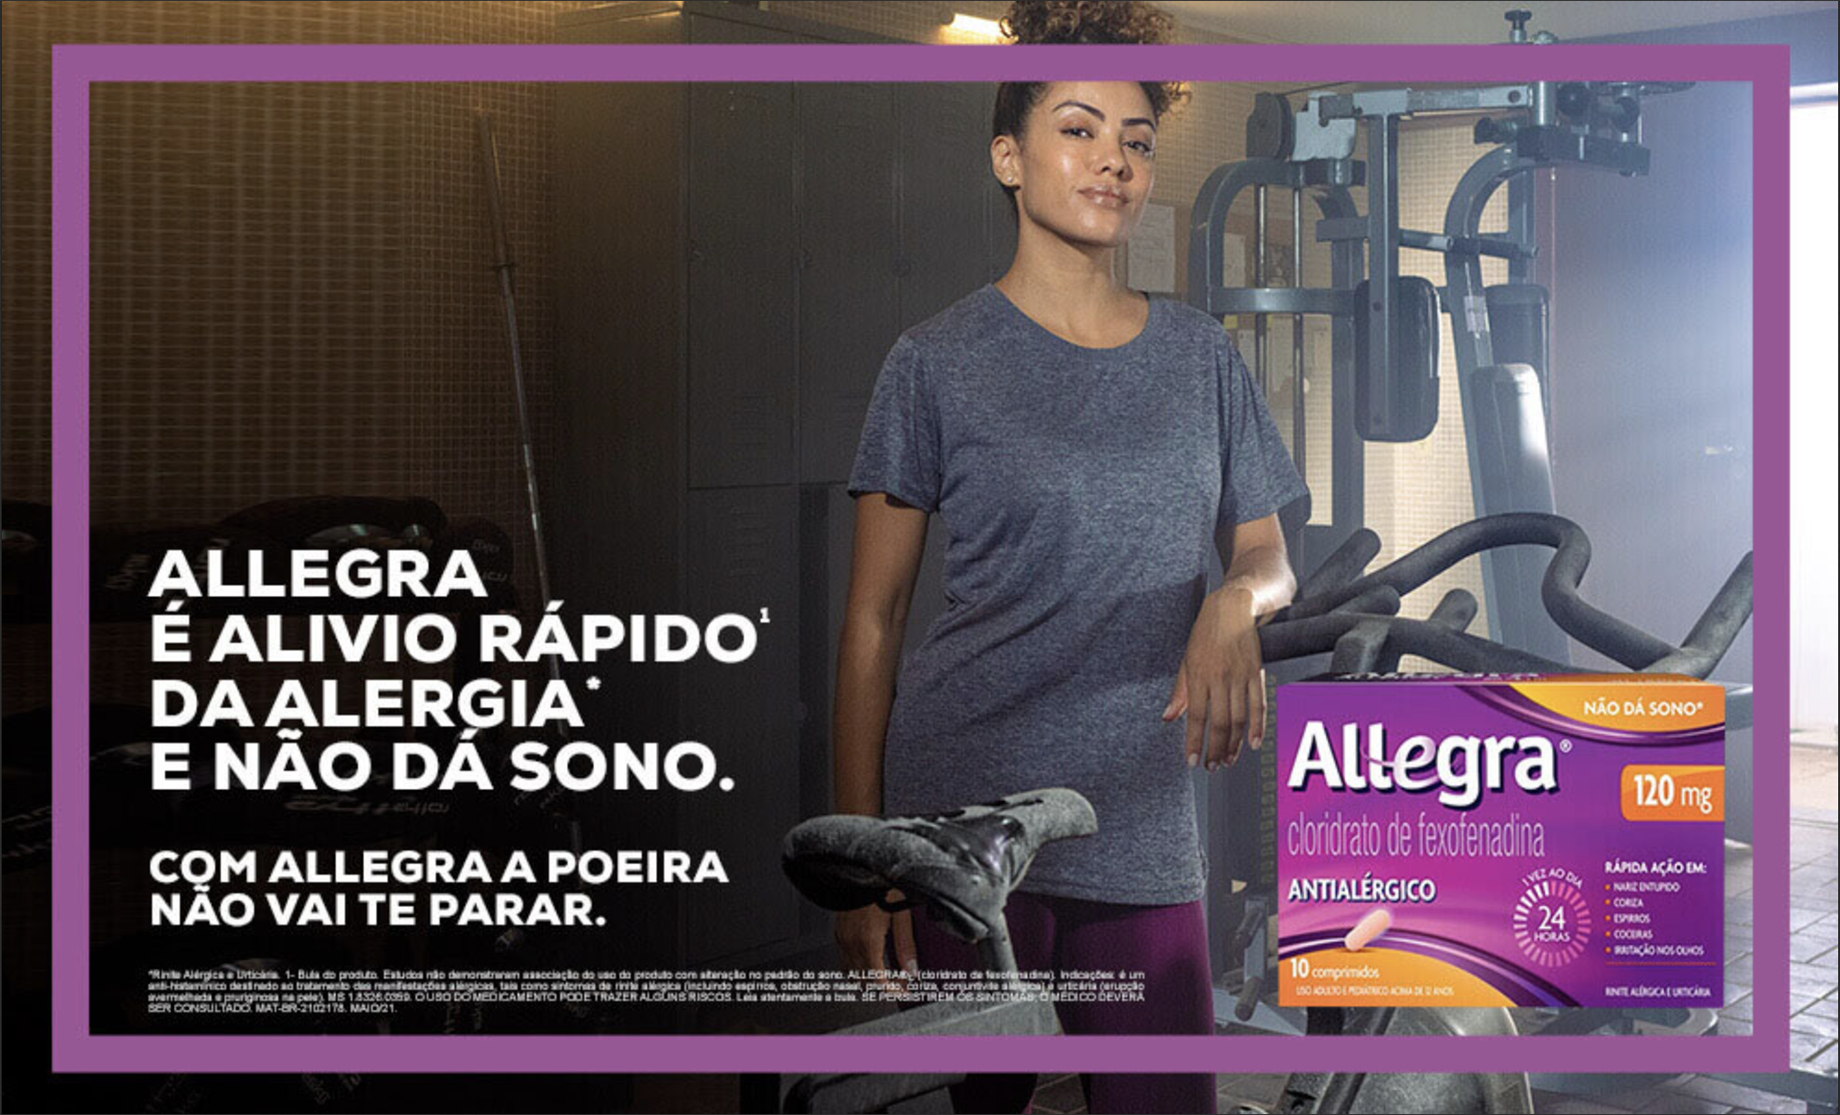 Tear sheet of woman in gym shot by Claus Lehmann for Allegra campaign